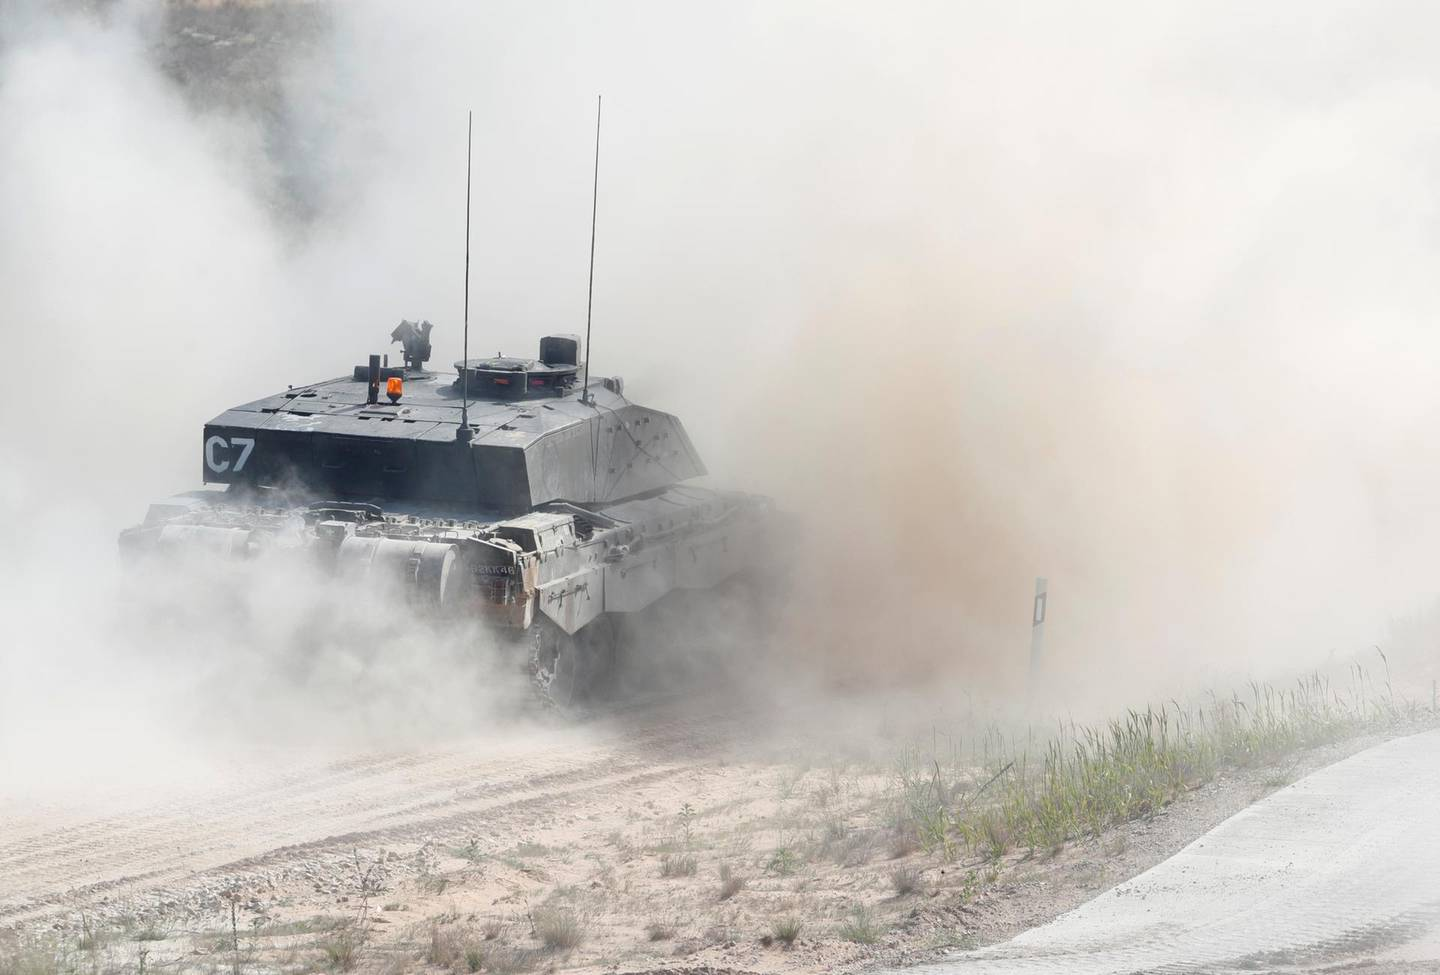 British Army Challenger tank of the NATO enhanced Forward Presence battle group based in Estonia, drives during certification field tactical exercise in Adazi, Latvia June 18, 2020. REUTERS/Ints Kalnins